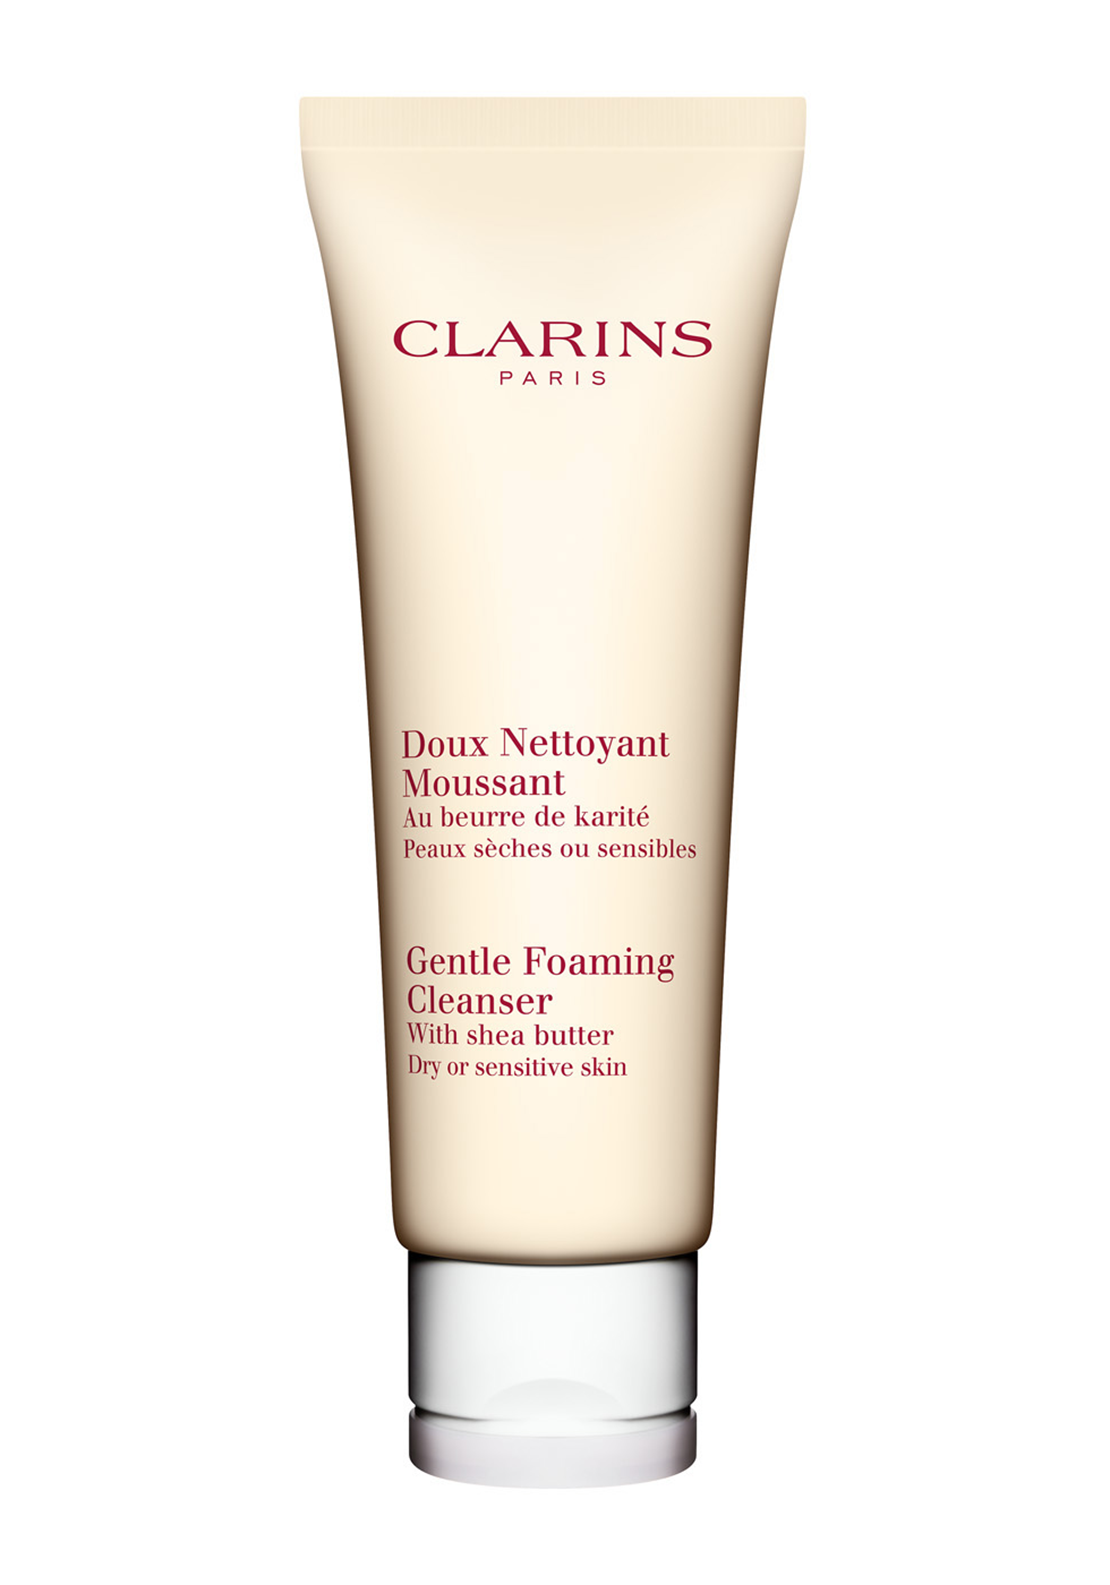 Clarins Gentle Foaming Cleanser with Shea Butter, 125ml